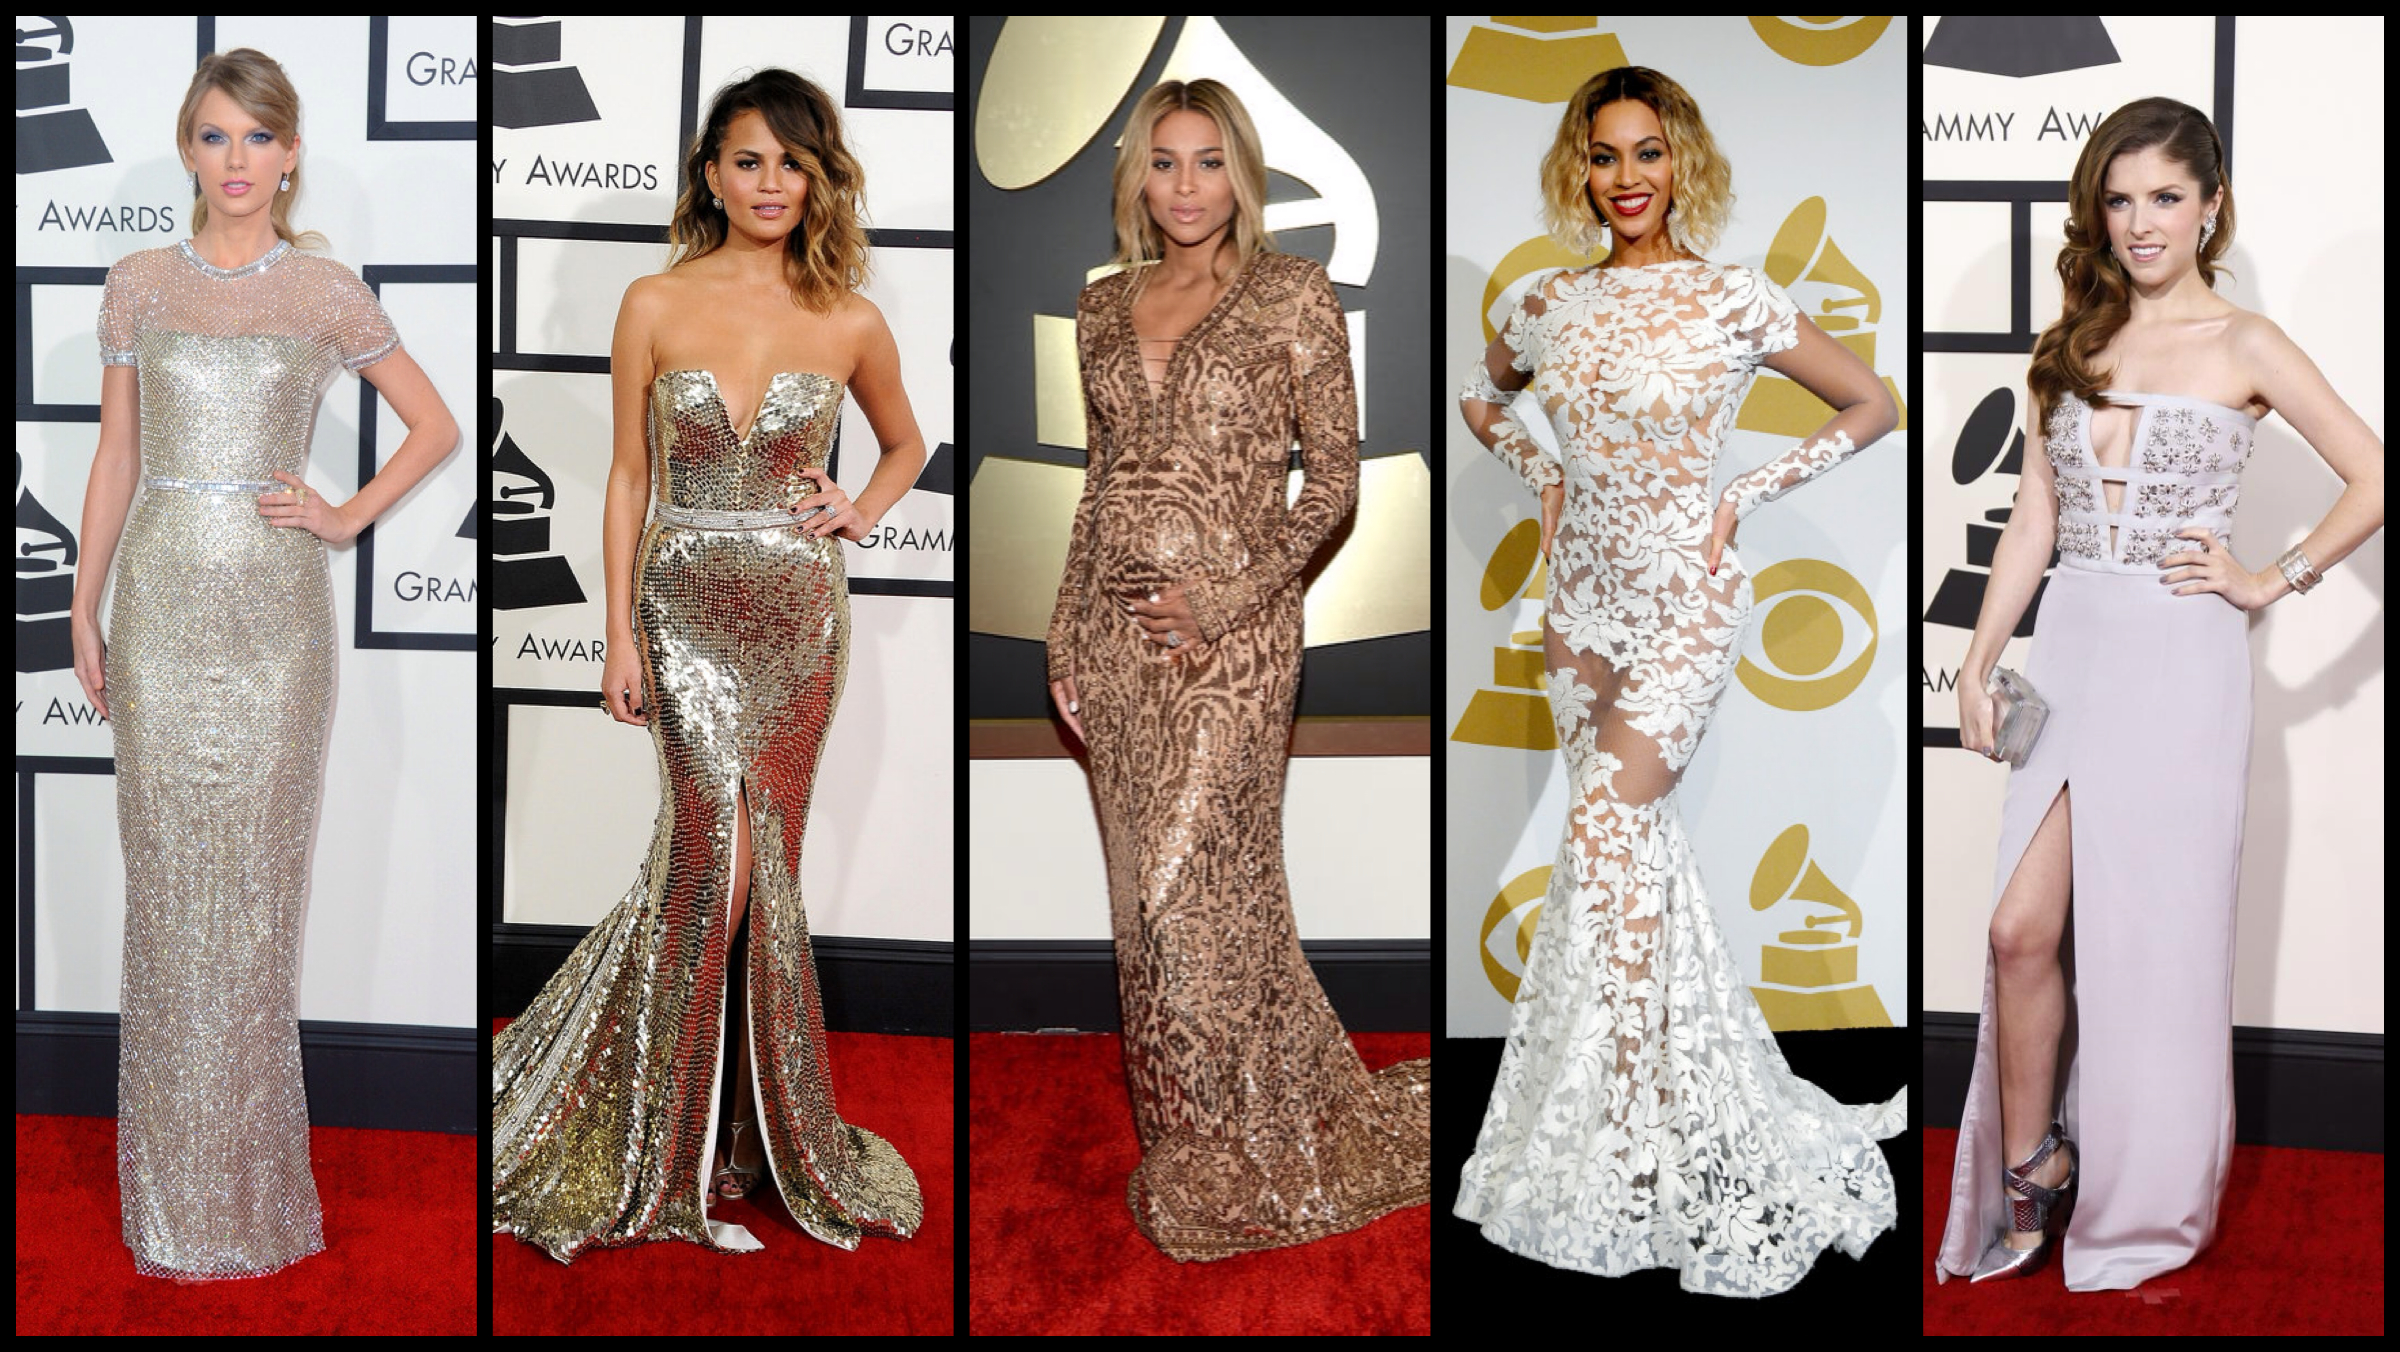 <b>GRAMMY AWARDS 2014...</b>